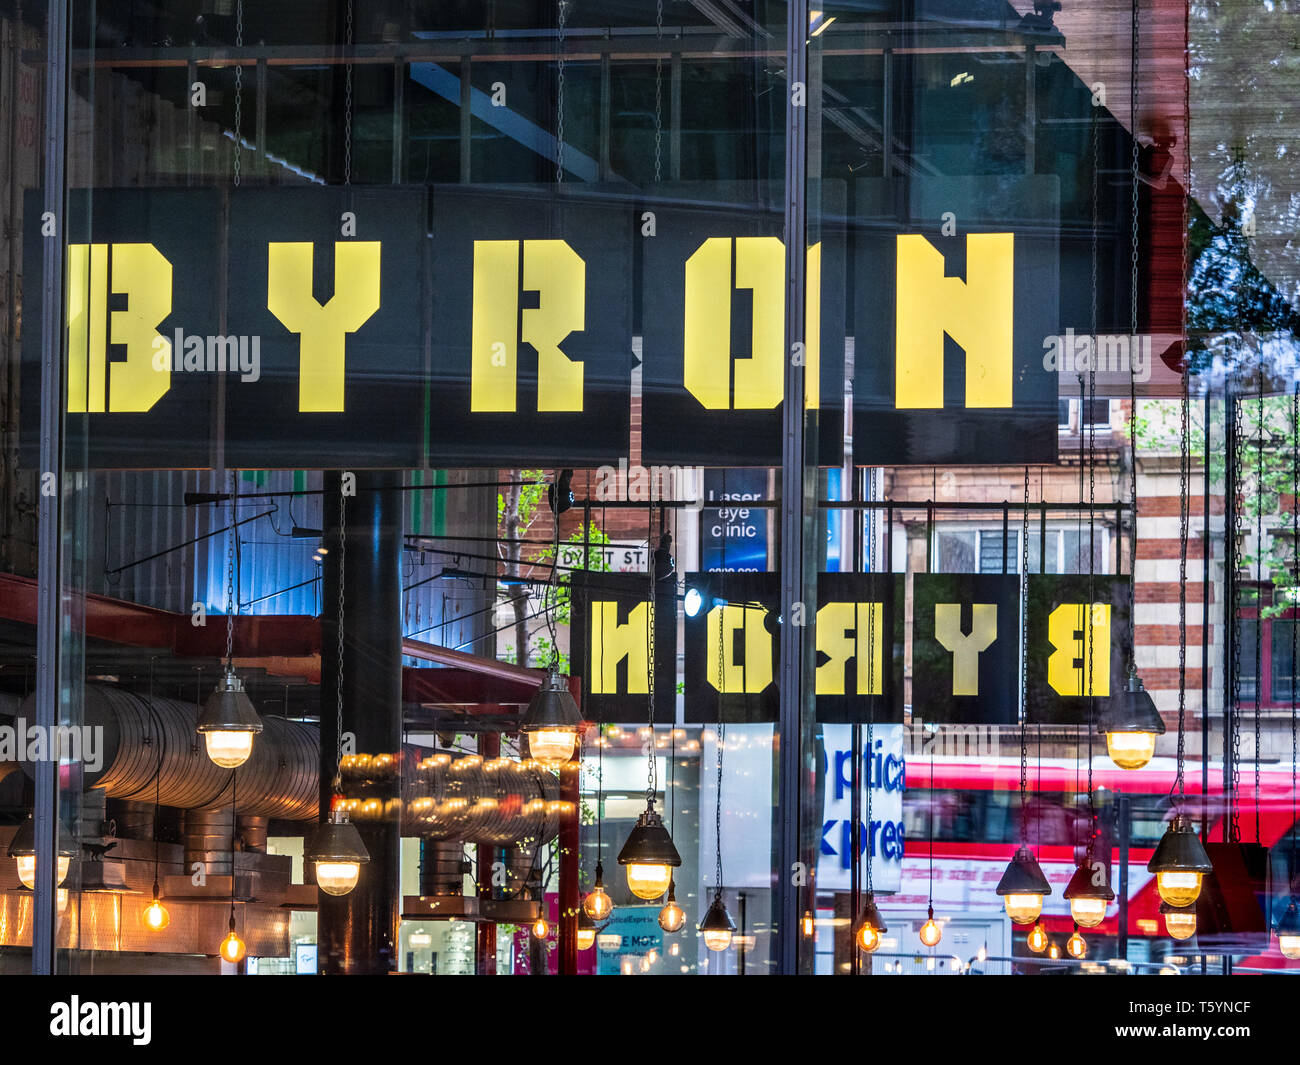 Byron Hamburgers Restaurant Central St Giles London. Byron is a UK based restaurant chain focussing on hamburgers. Founded 2007 - Stock Image